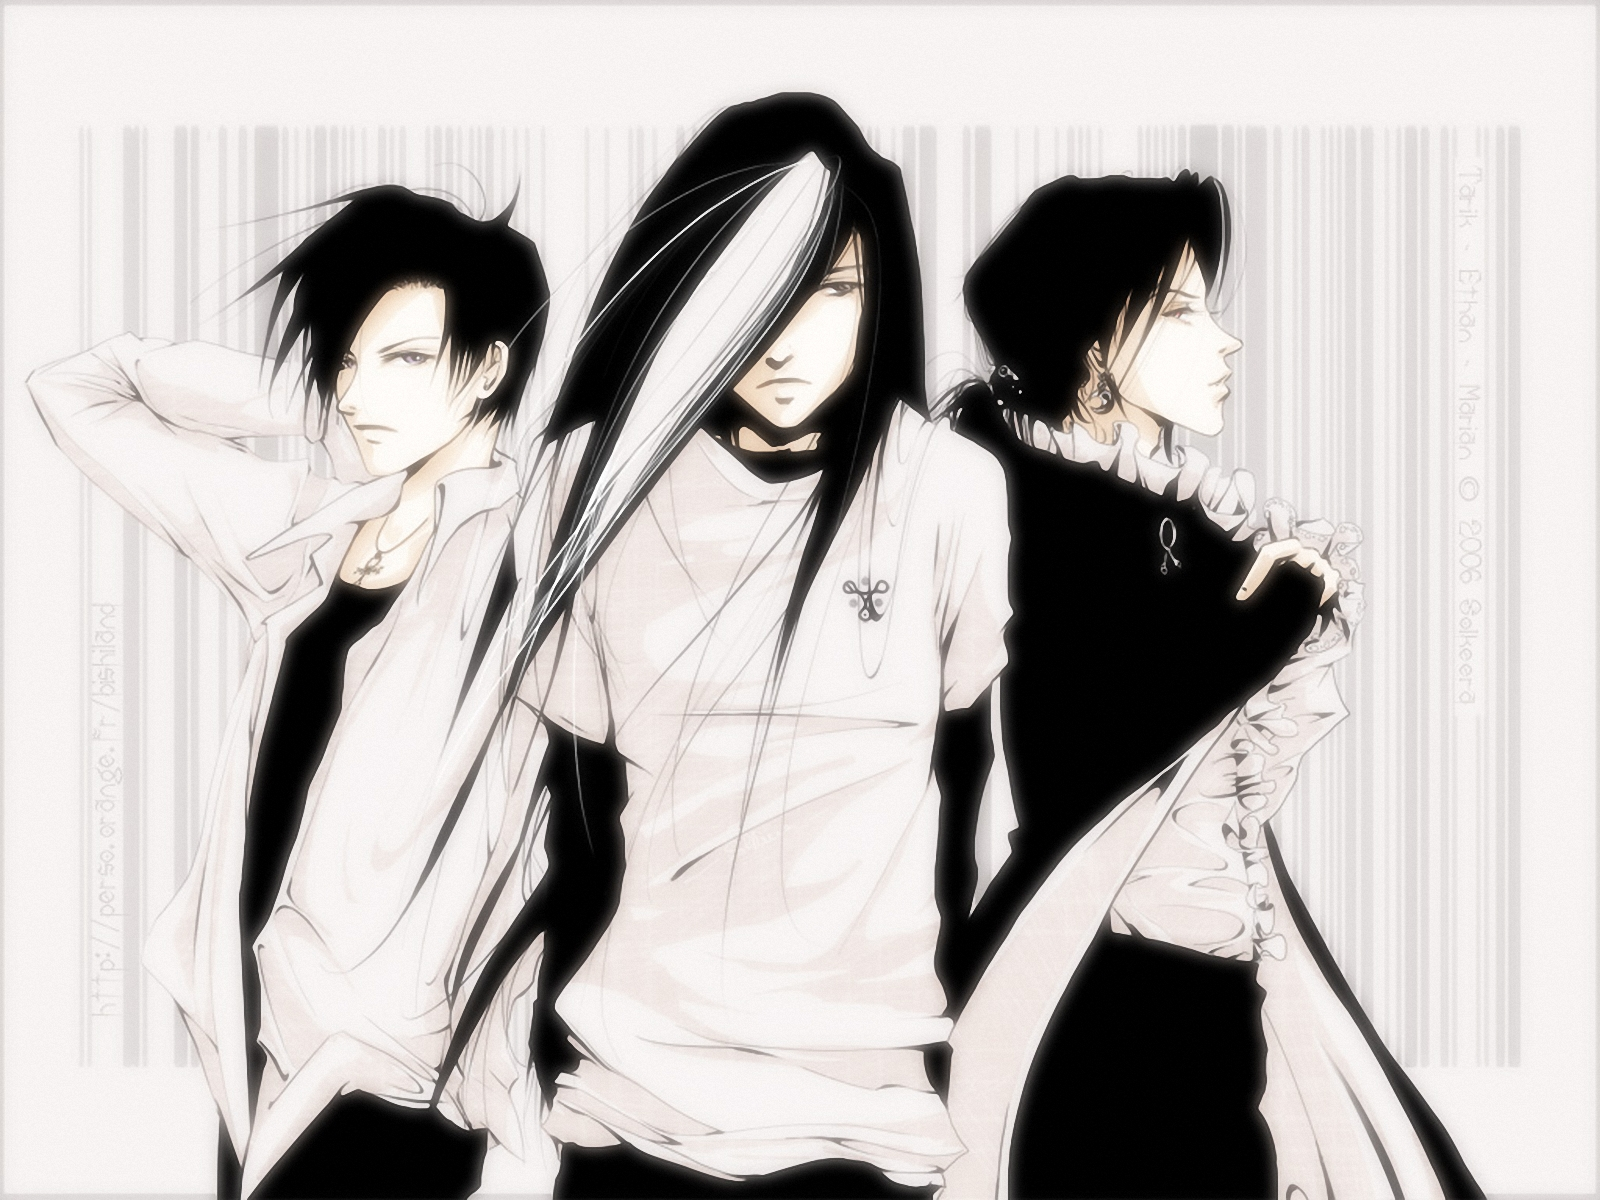 Three guys in the anime style pencil - Wallpaper